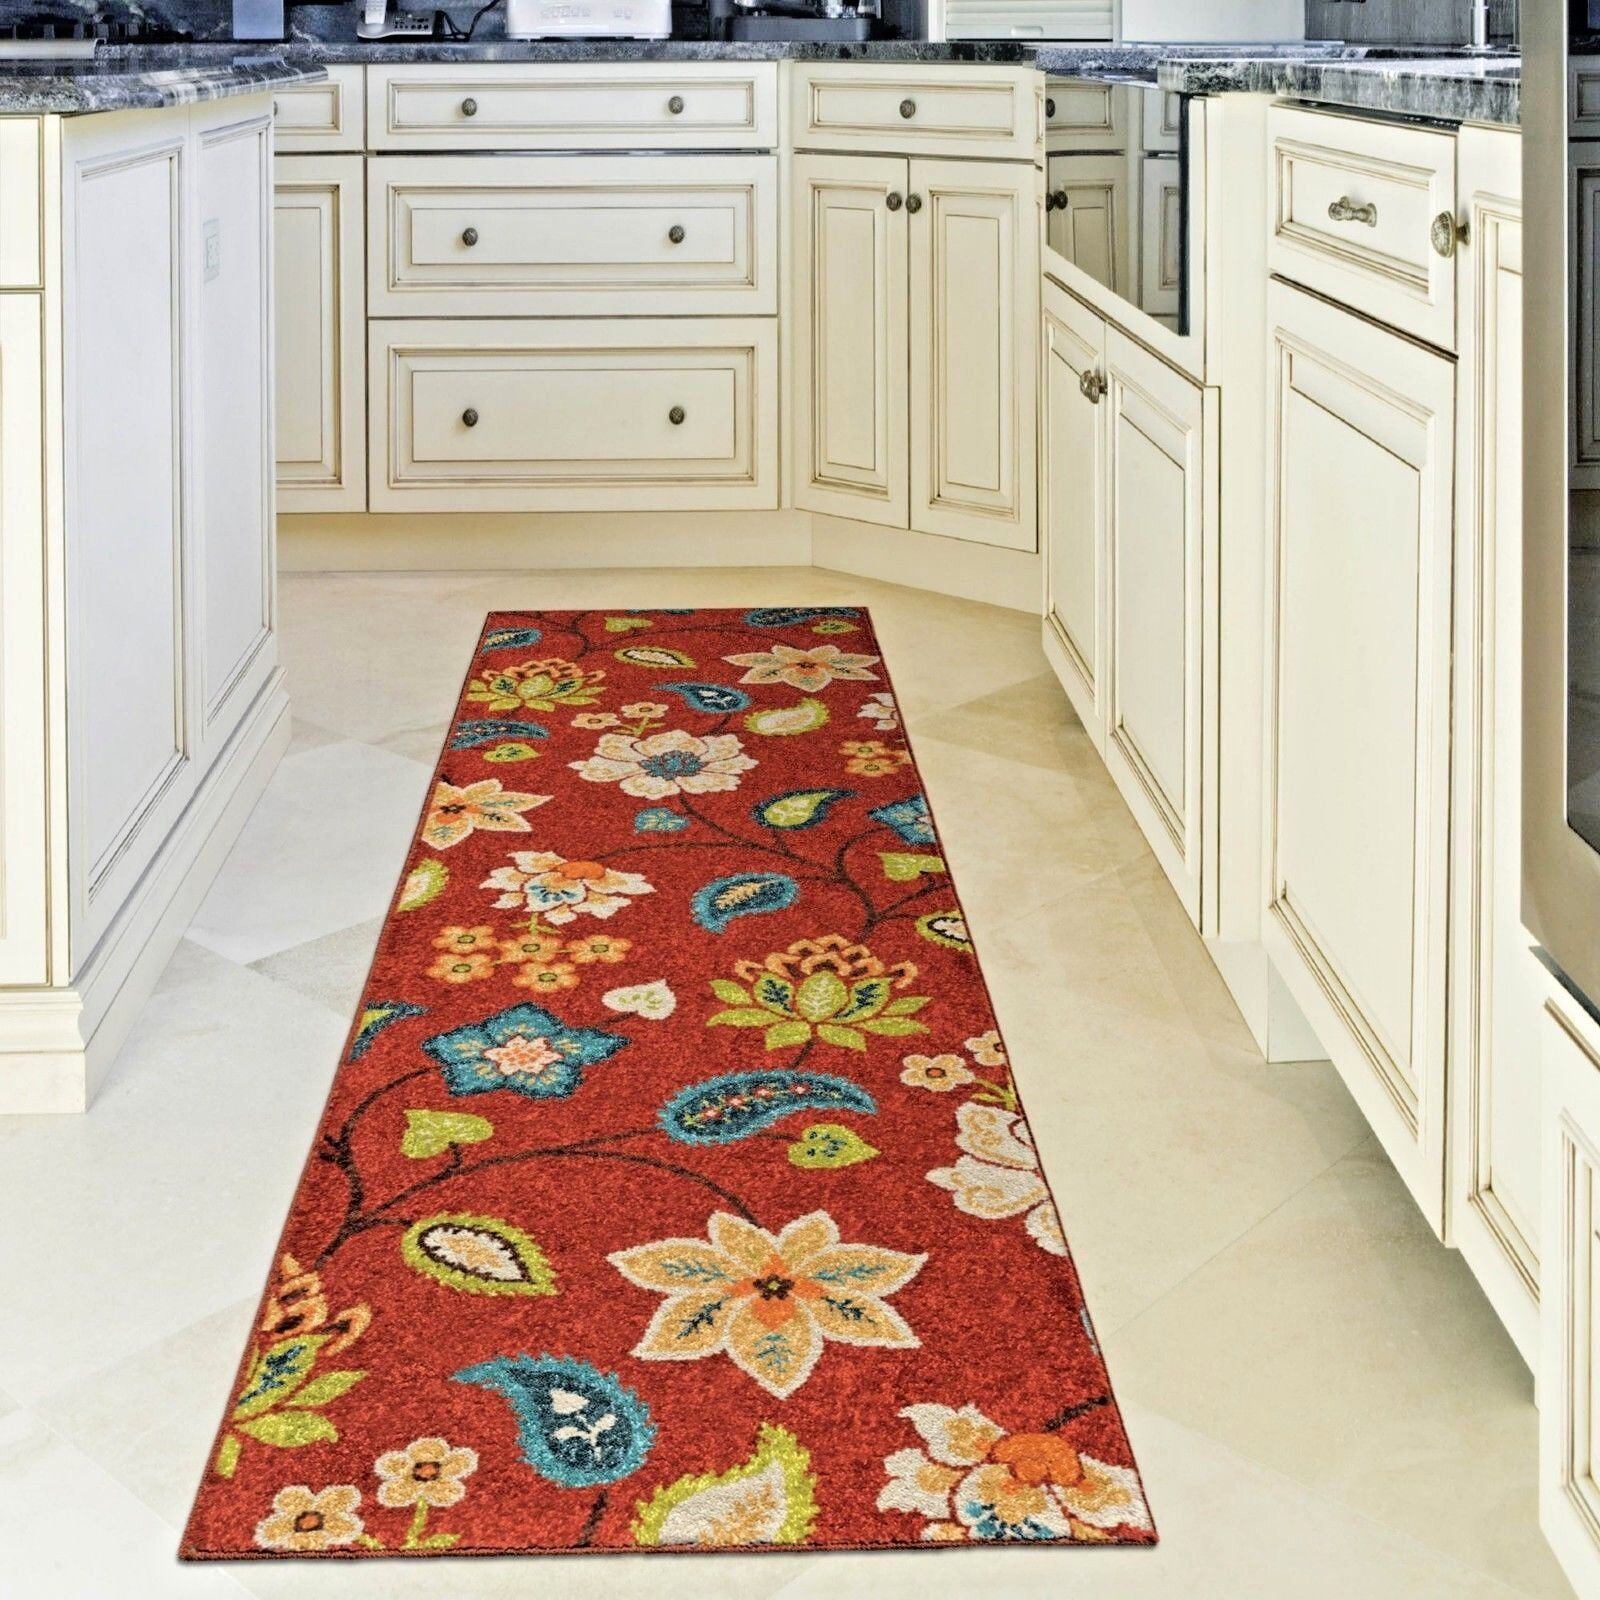 kitchen rug runners small recycling bins for rugs carpet area outdoor cute red patio details about runner